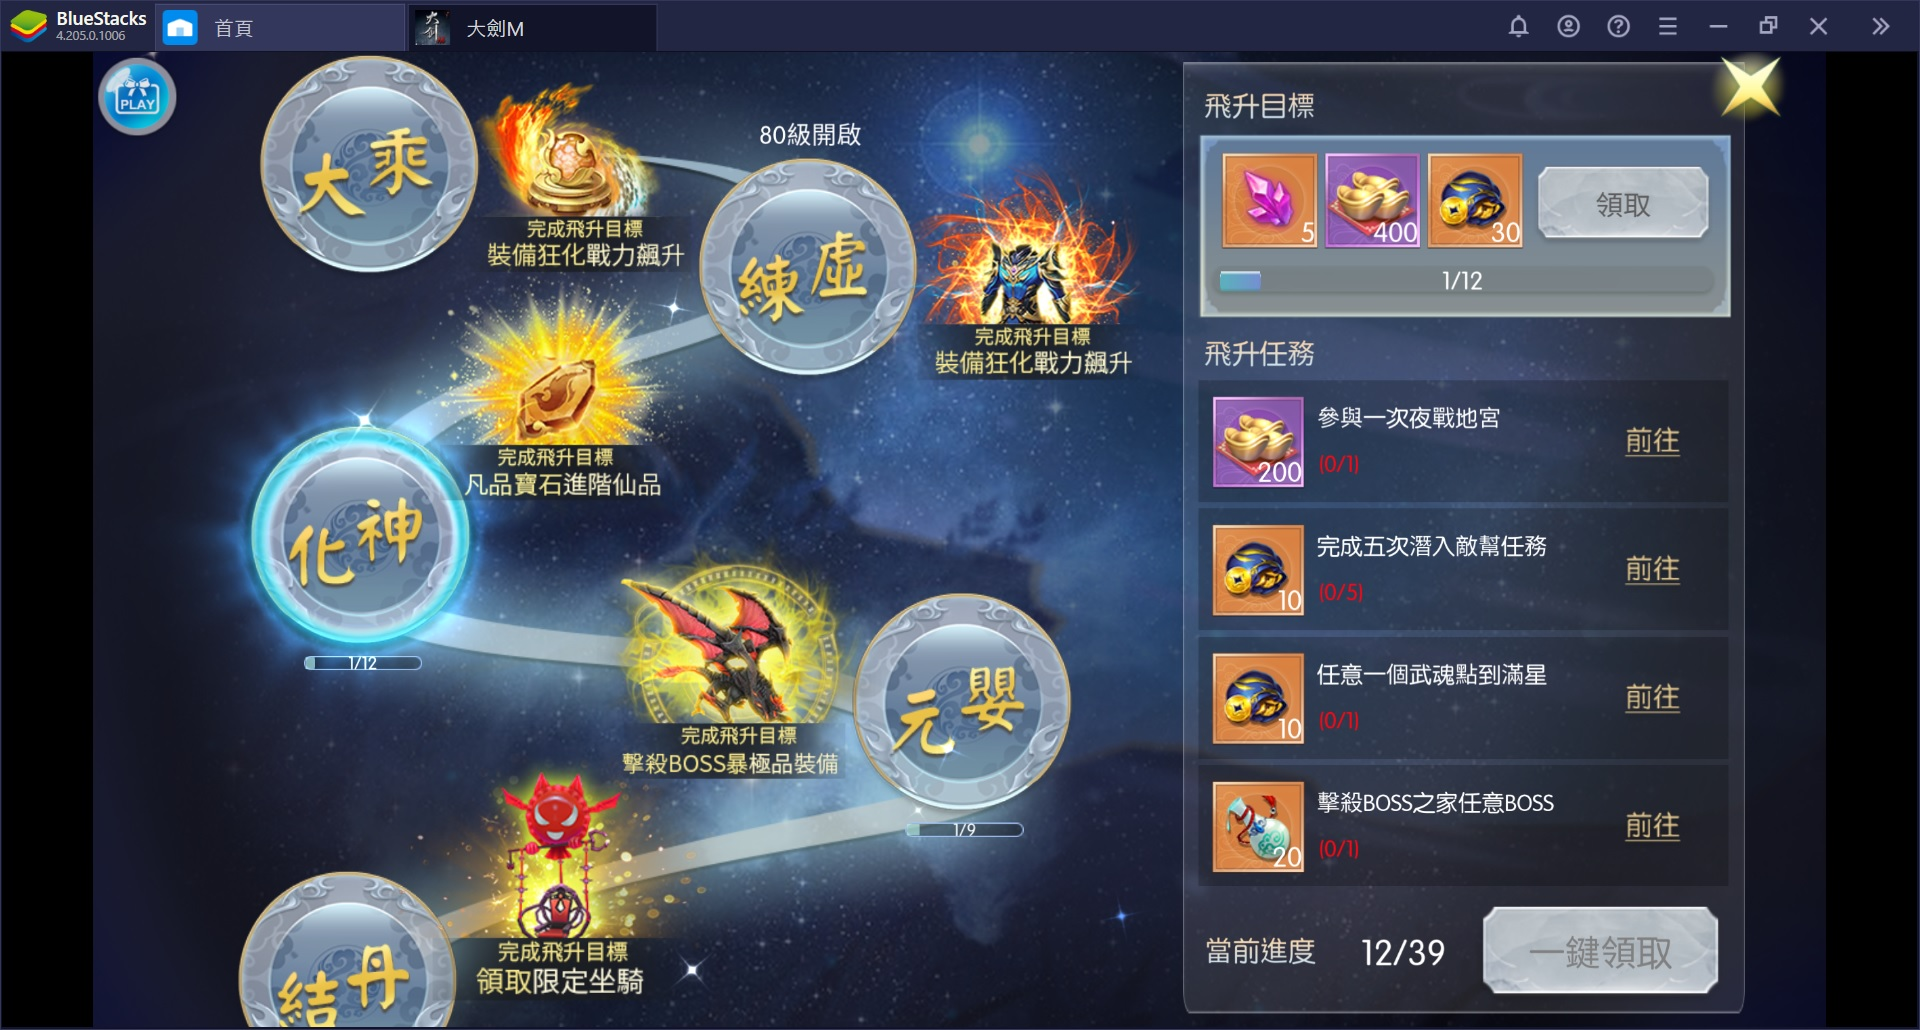 使用BlueStacks在PC上遊新世代穿越愛情手遊《大劍M》